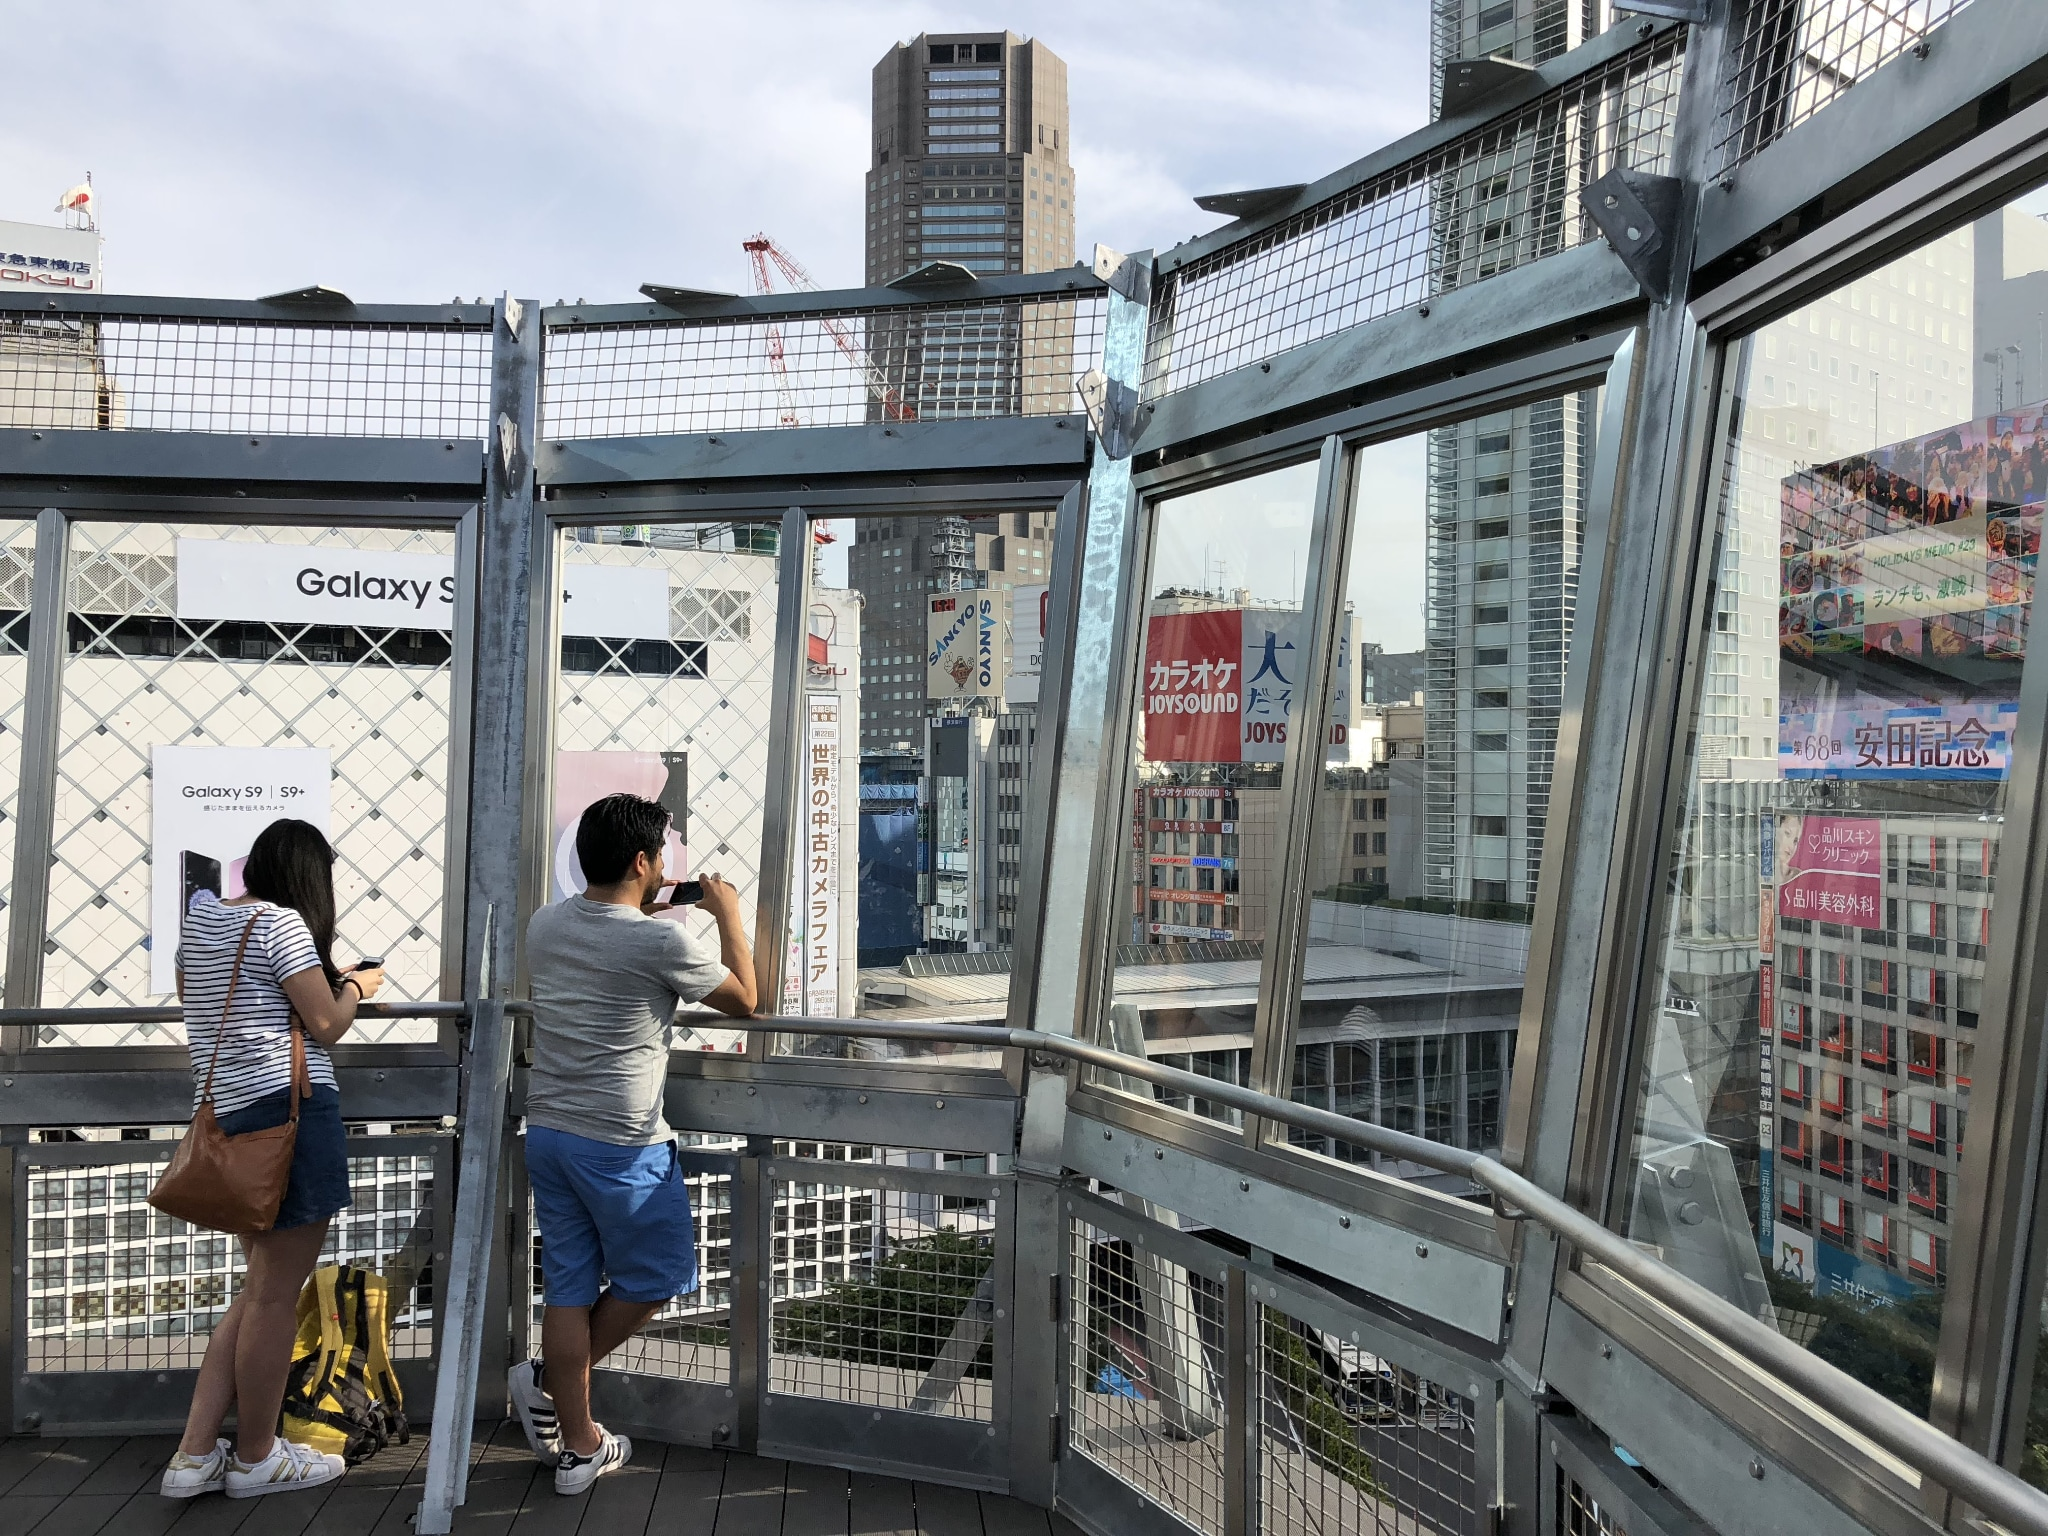 Crossing View, the new open-air observation deck overlooking the Shibuya Scramble.